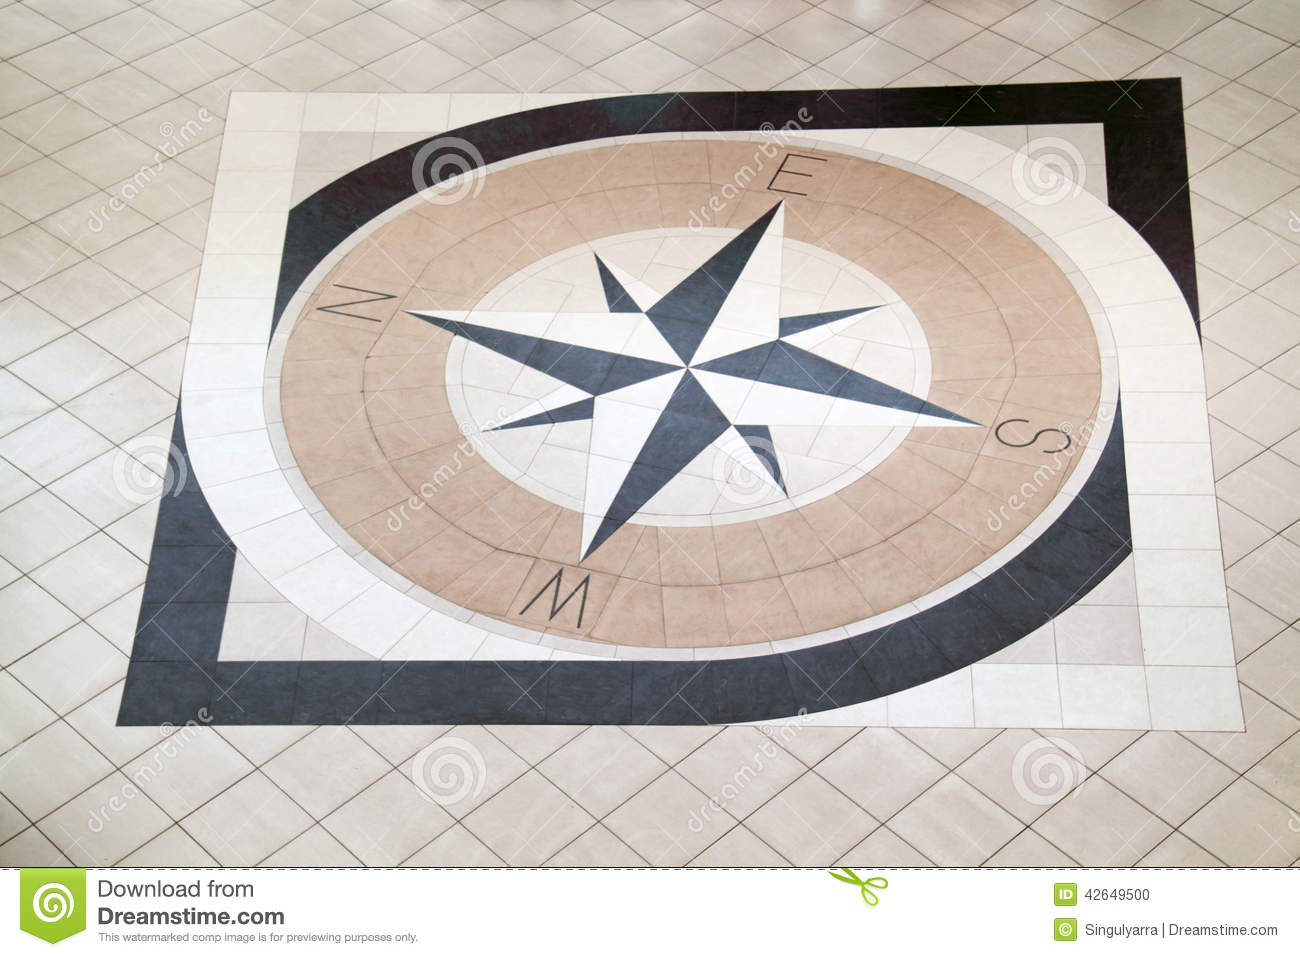 Compass Floor Tile : Large compass on floor stock photo image of mall